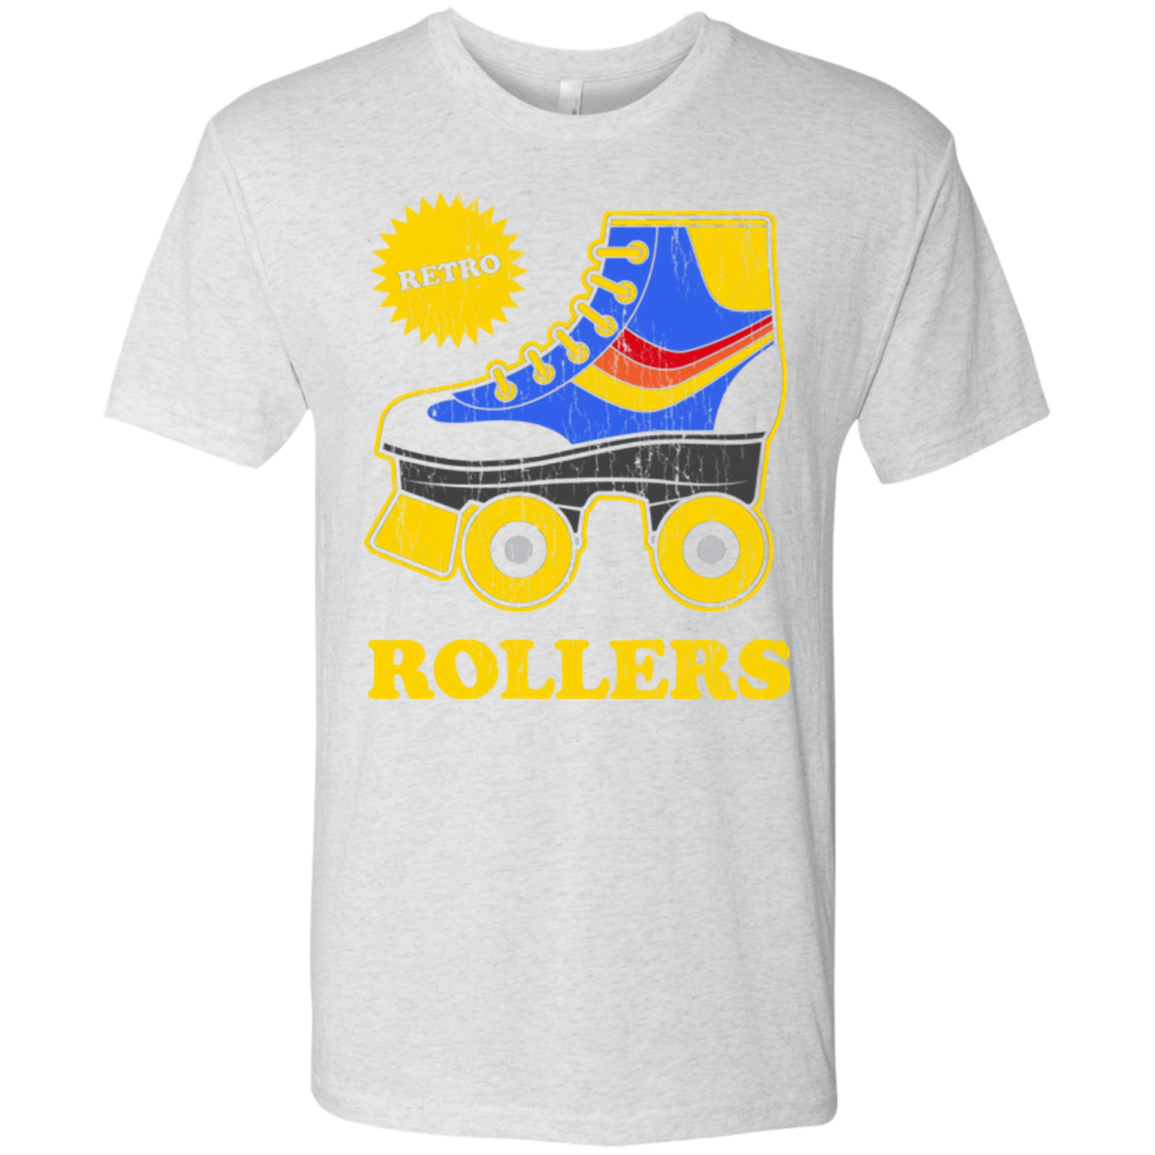 Retro rollers Men's Triblend T-Shirt